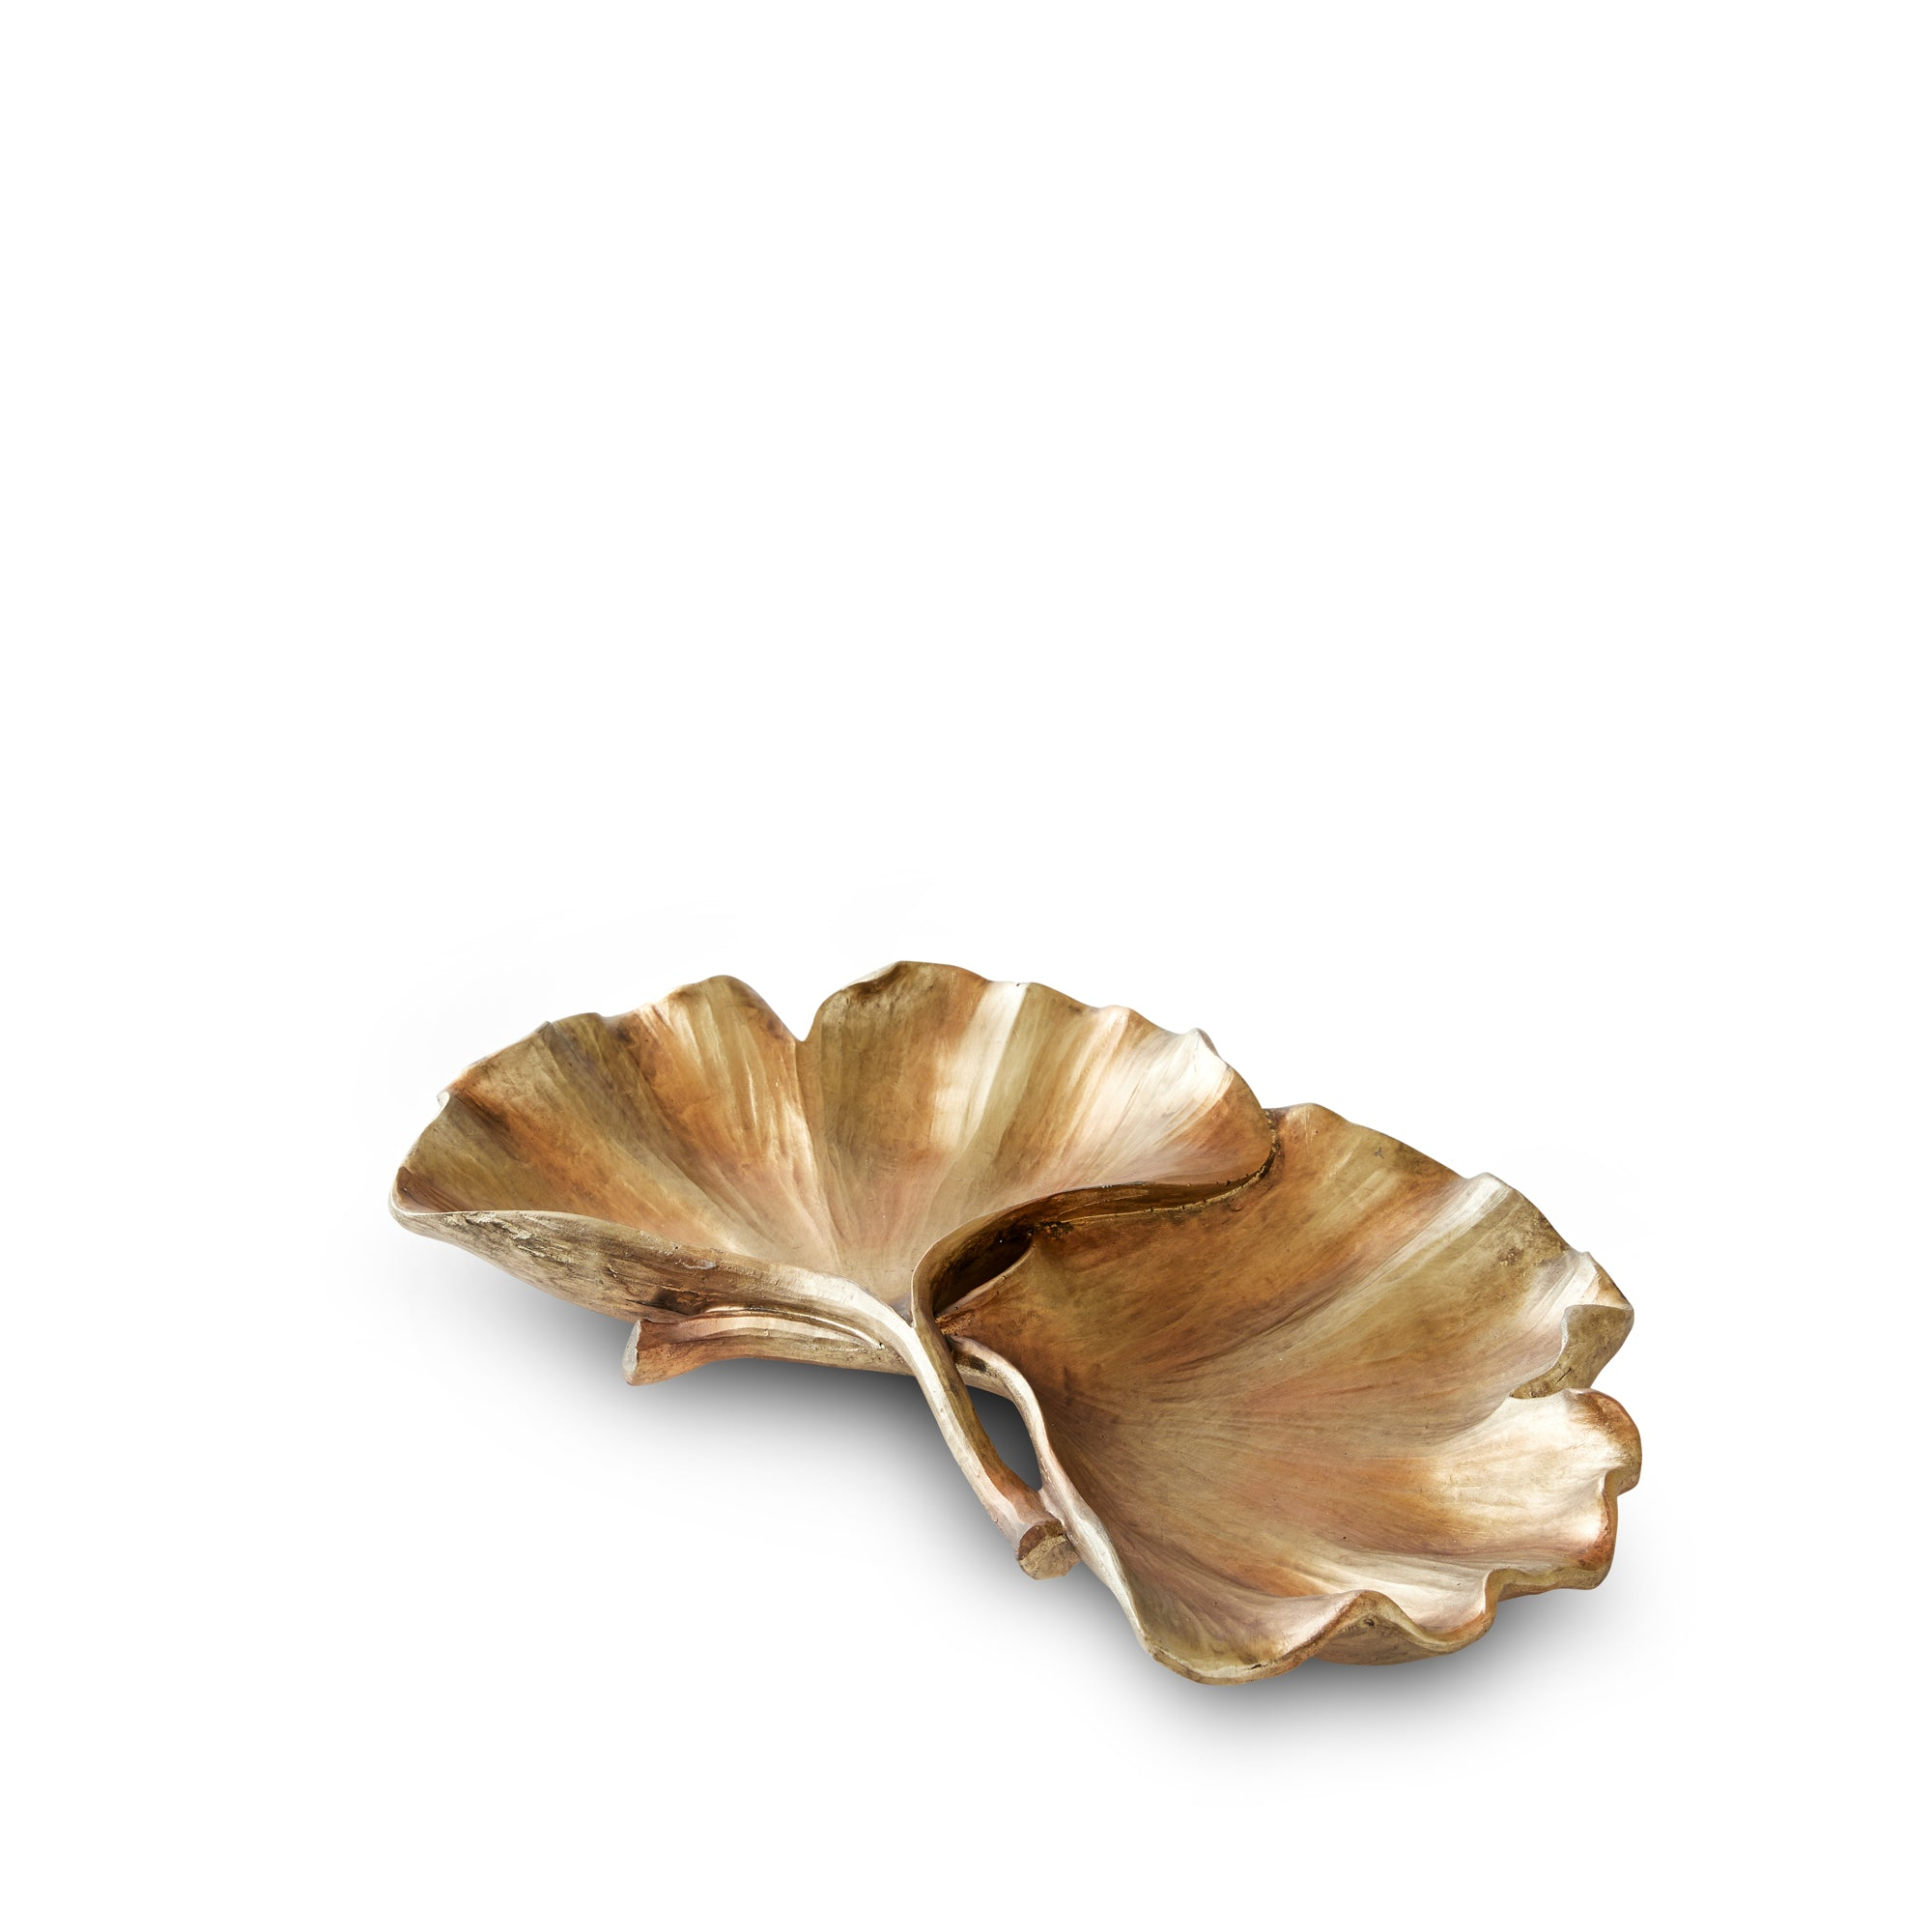 Antique gold ginkgo leaf plate